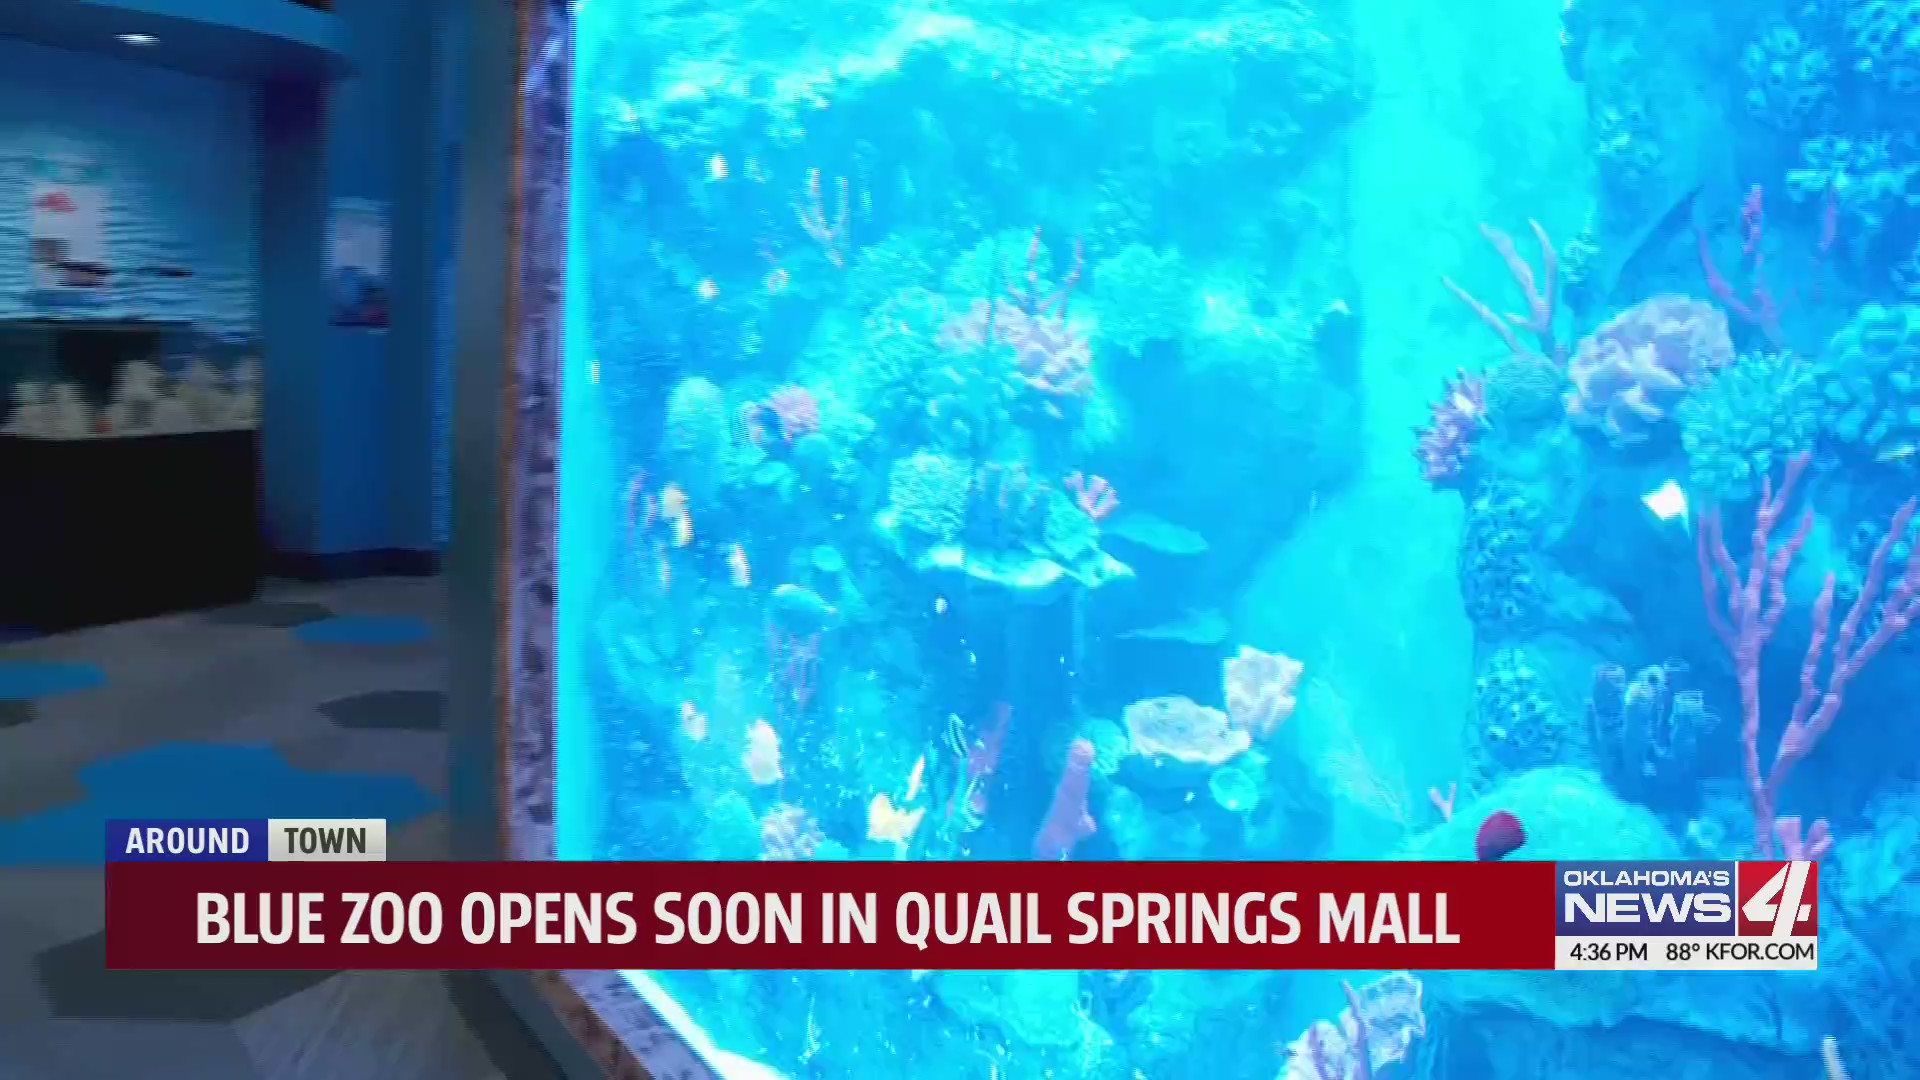 Blue Zoo in Quail Springs Mall